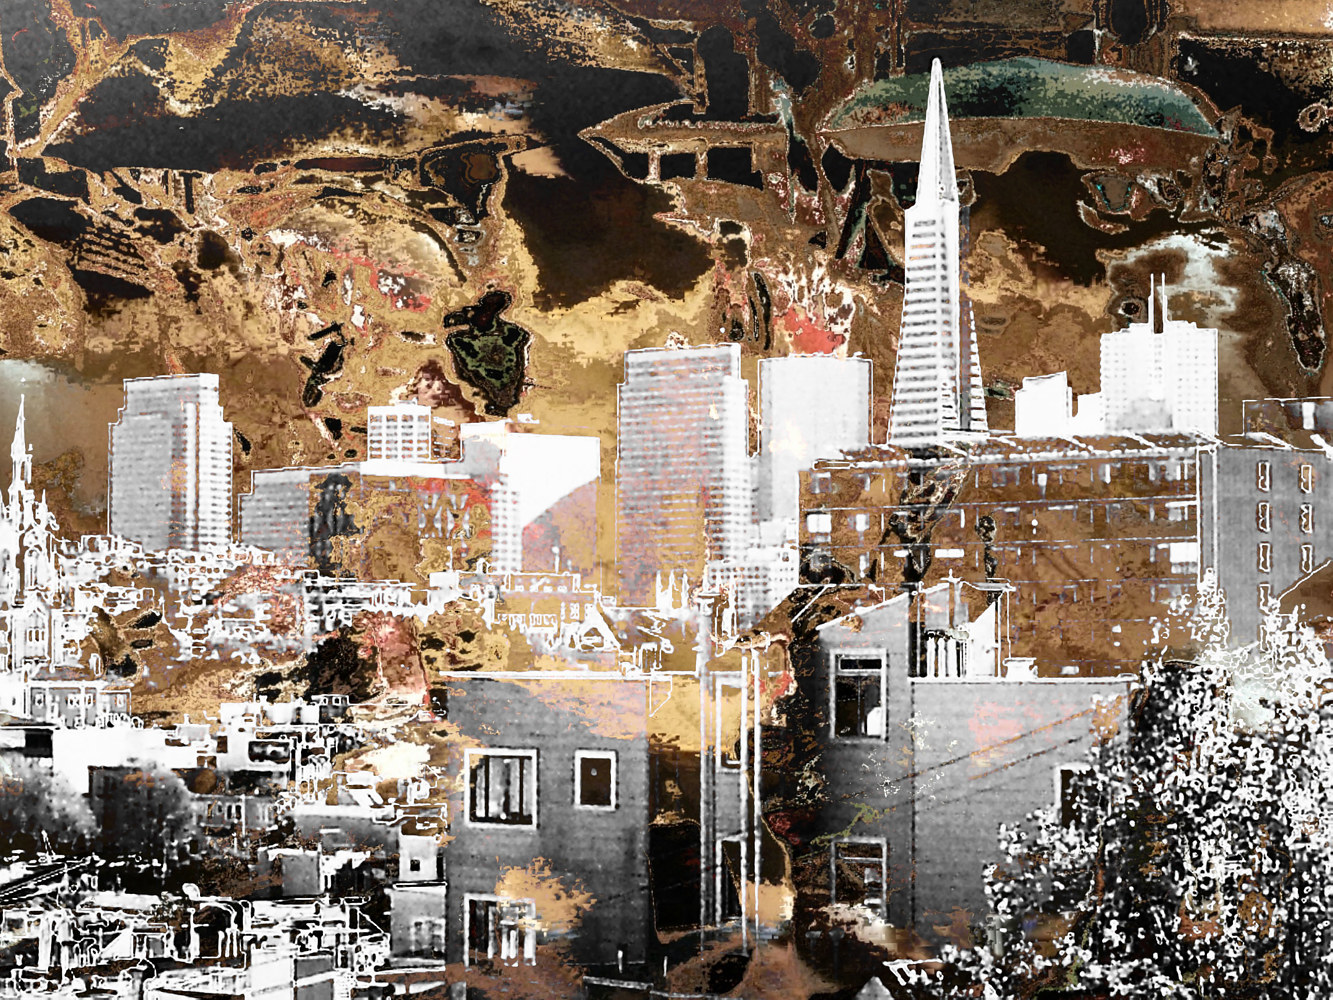 Photography San Francisco Survives Another Day by Pamela Pitt